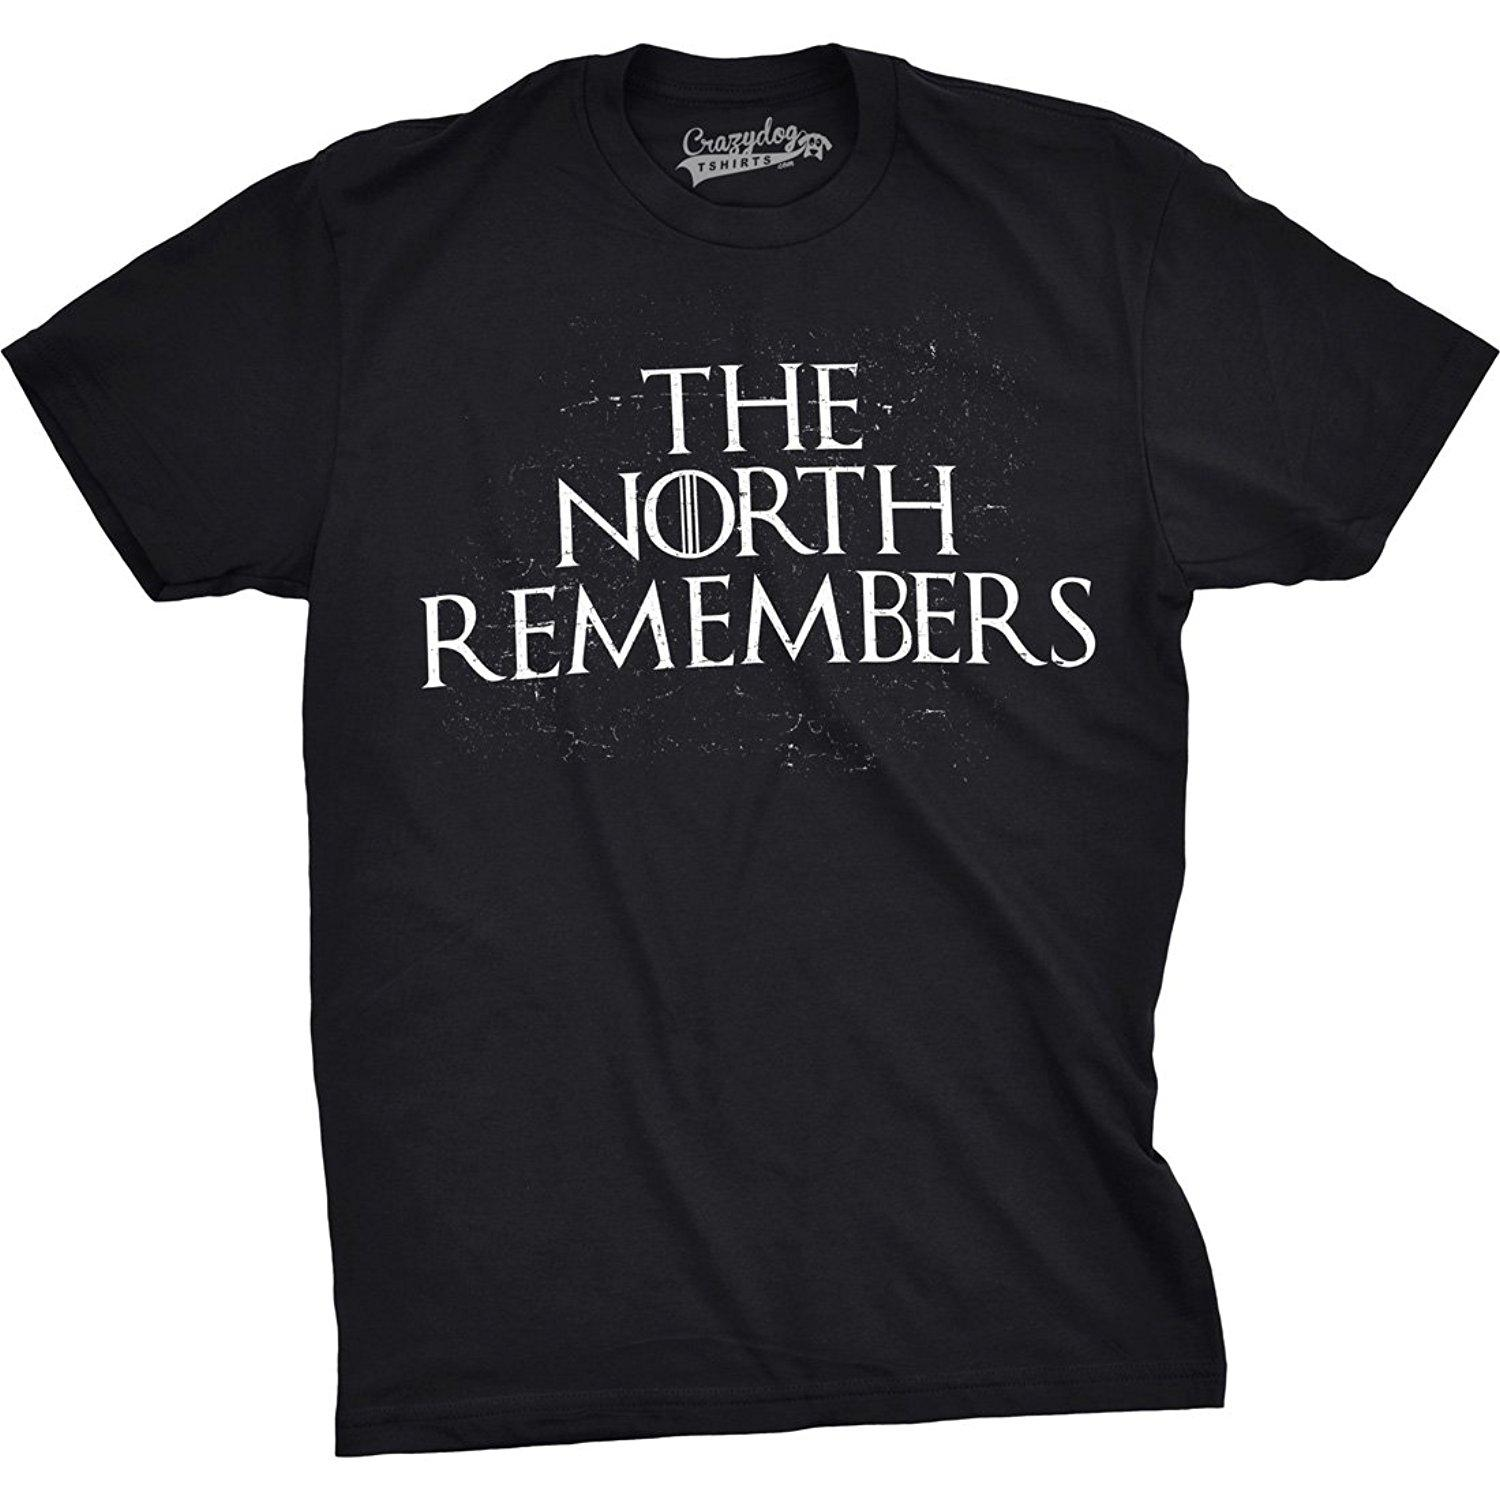 Mens The North Remembers Funny T Shirts Cool Winter Christmas ...